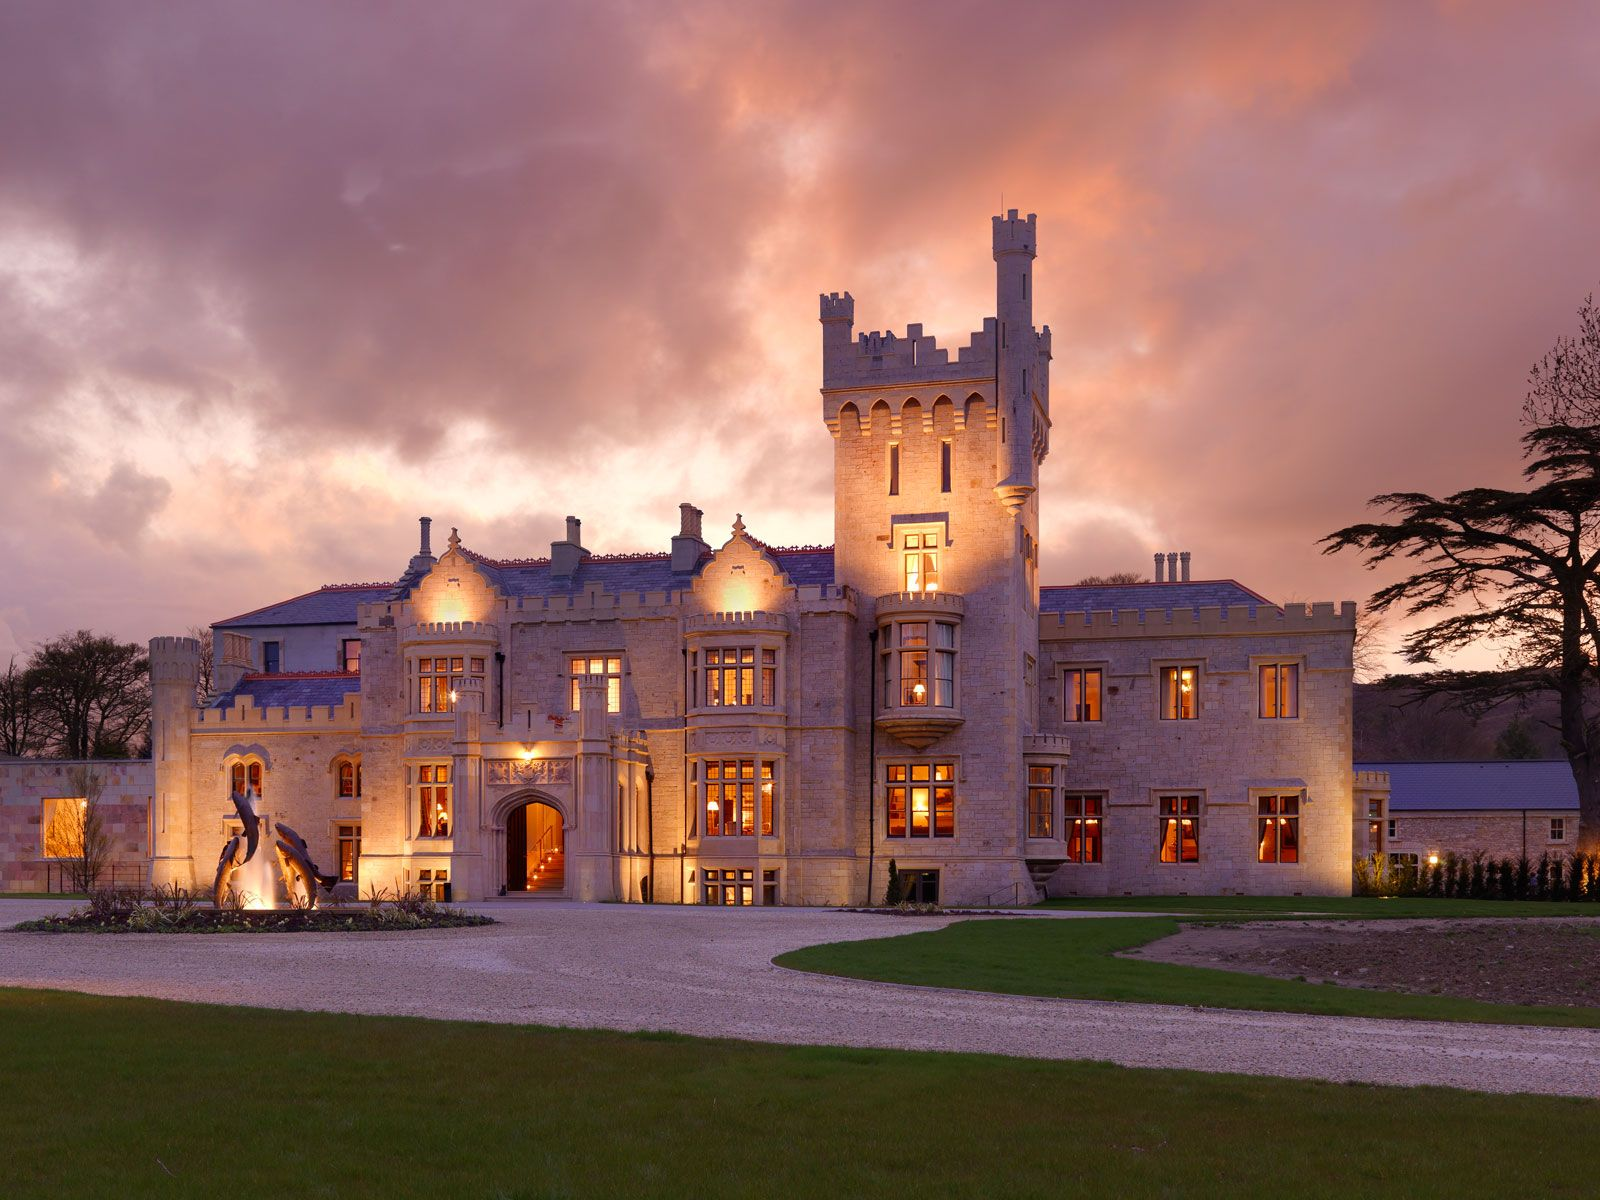 View Photos Of Lough Eske Castle A Luxury Ireland Hotel Our Is Located In Donegal And The Perfect Destination For Business Or